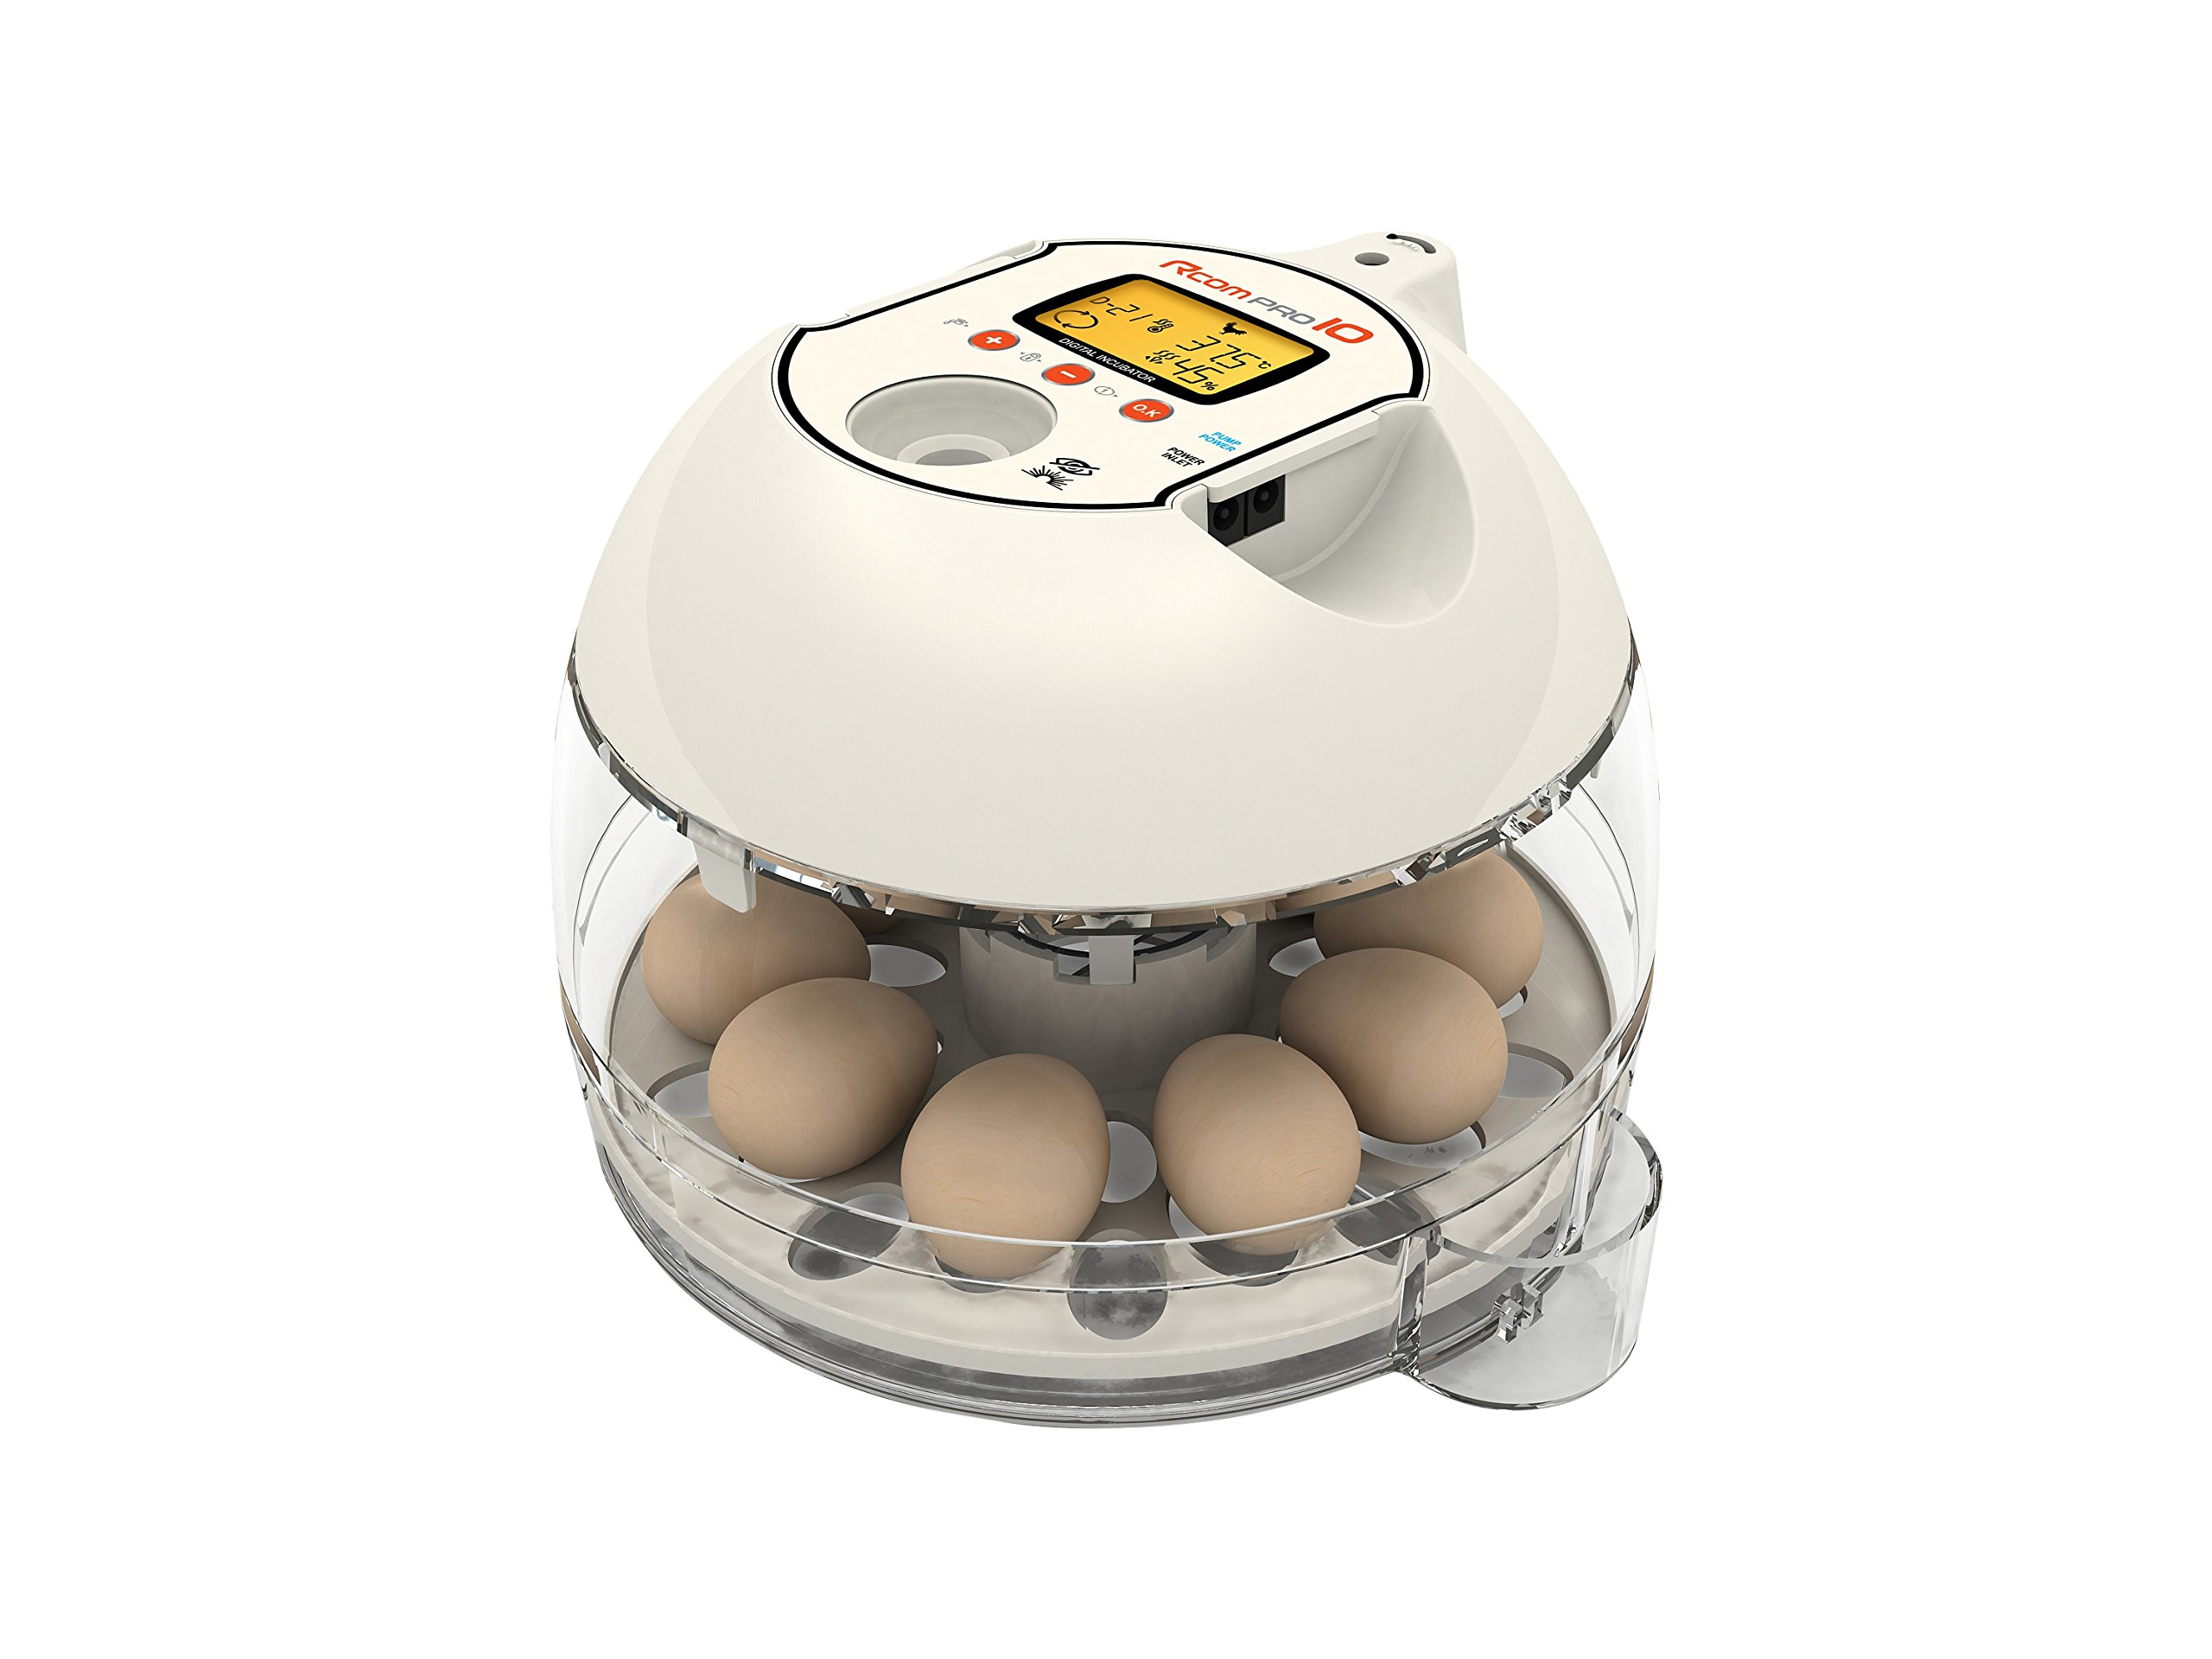 R-Com PX-10 Plastic/Metal Model 10 Pro Automatic Digital Auto-Turning Egg Incubator without APS